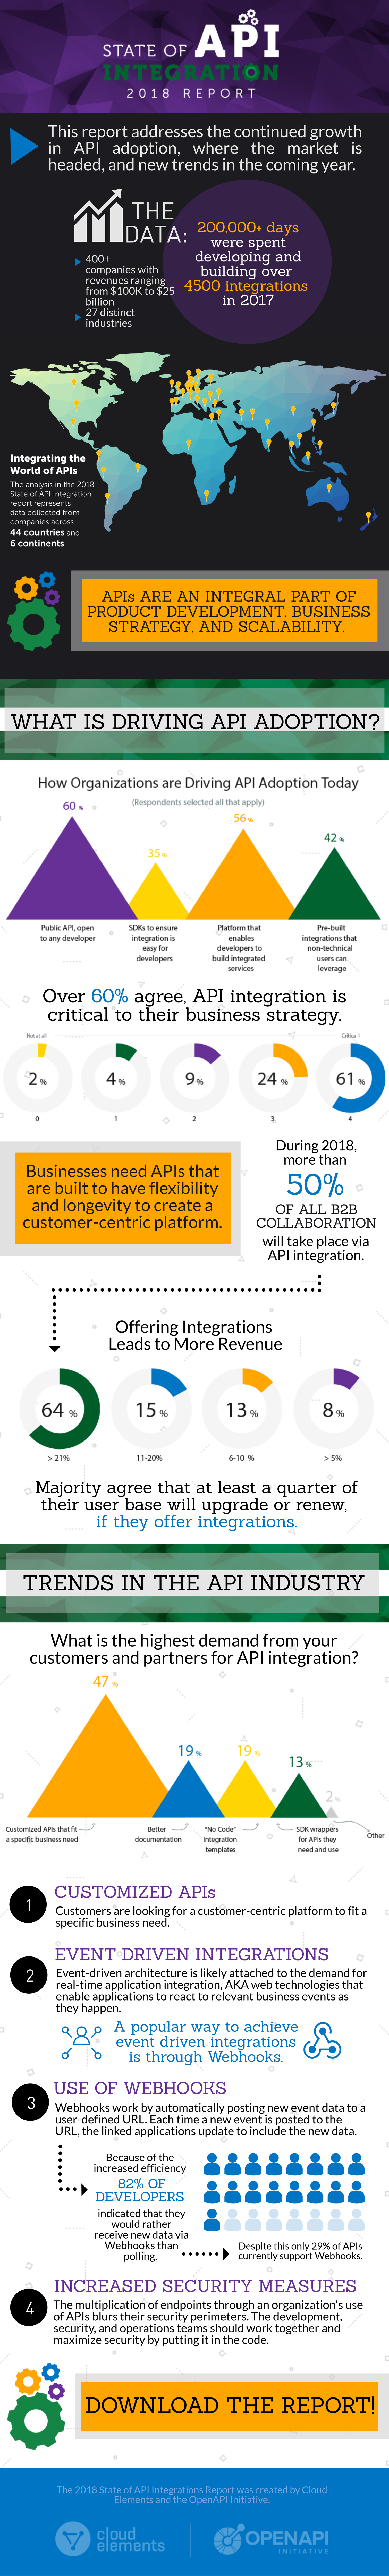 State of API Integration 2018 Report Infographic